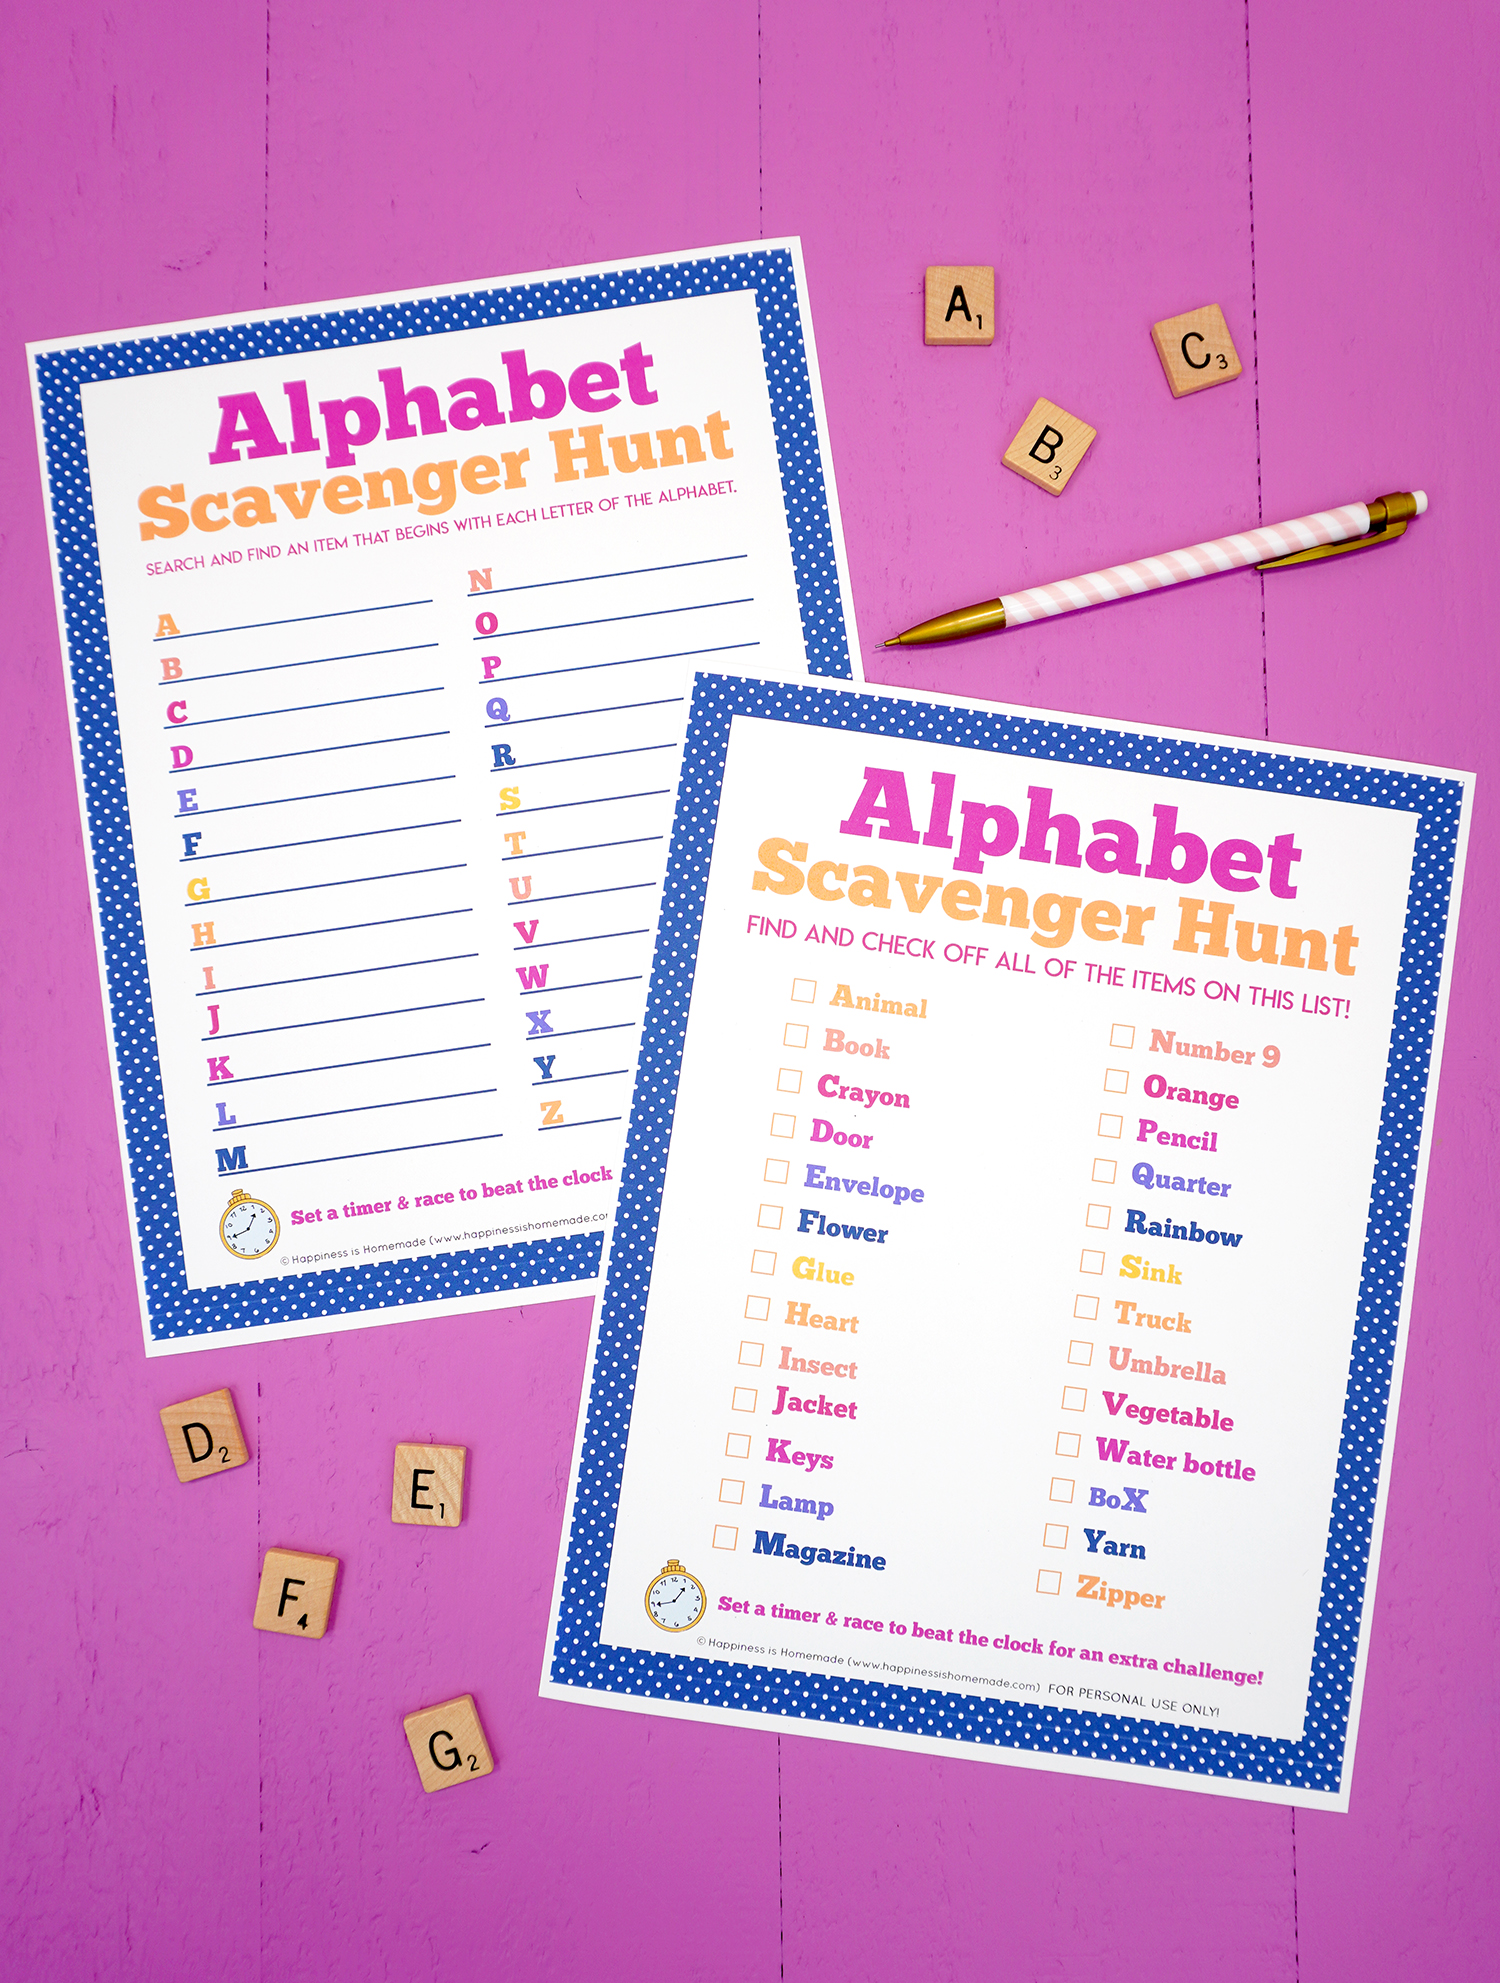 Two alphabet scavenger hunt printables on a purple background surrounded by ABC scrabble tile letters and a pink striped pencil